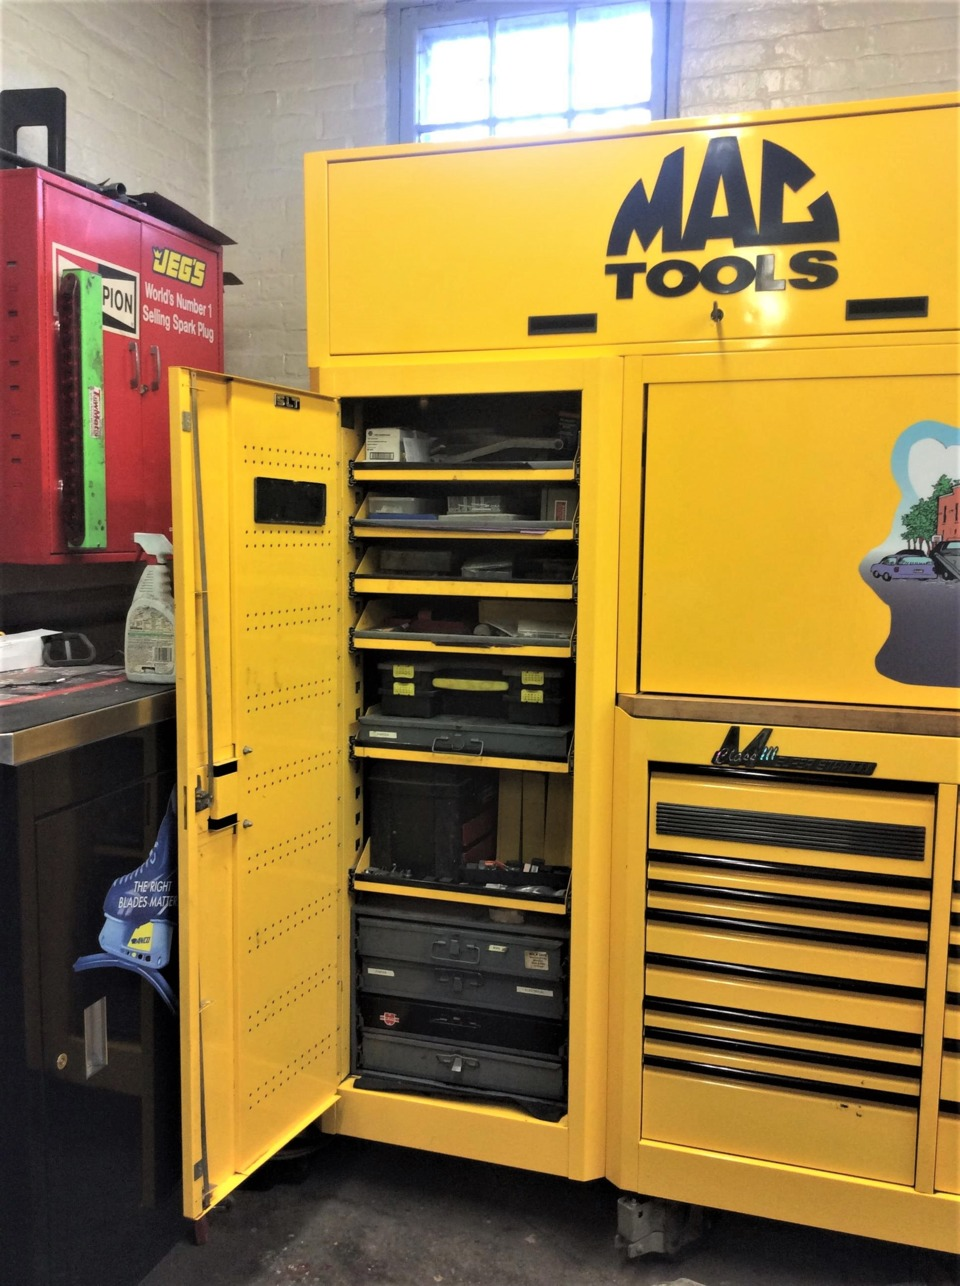 Shop Tool Boxes Big Time Boxes Joseph Spiak Mac Tools